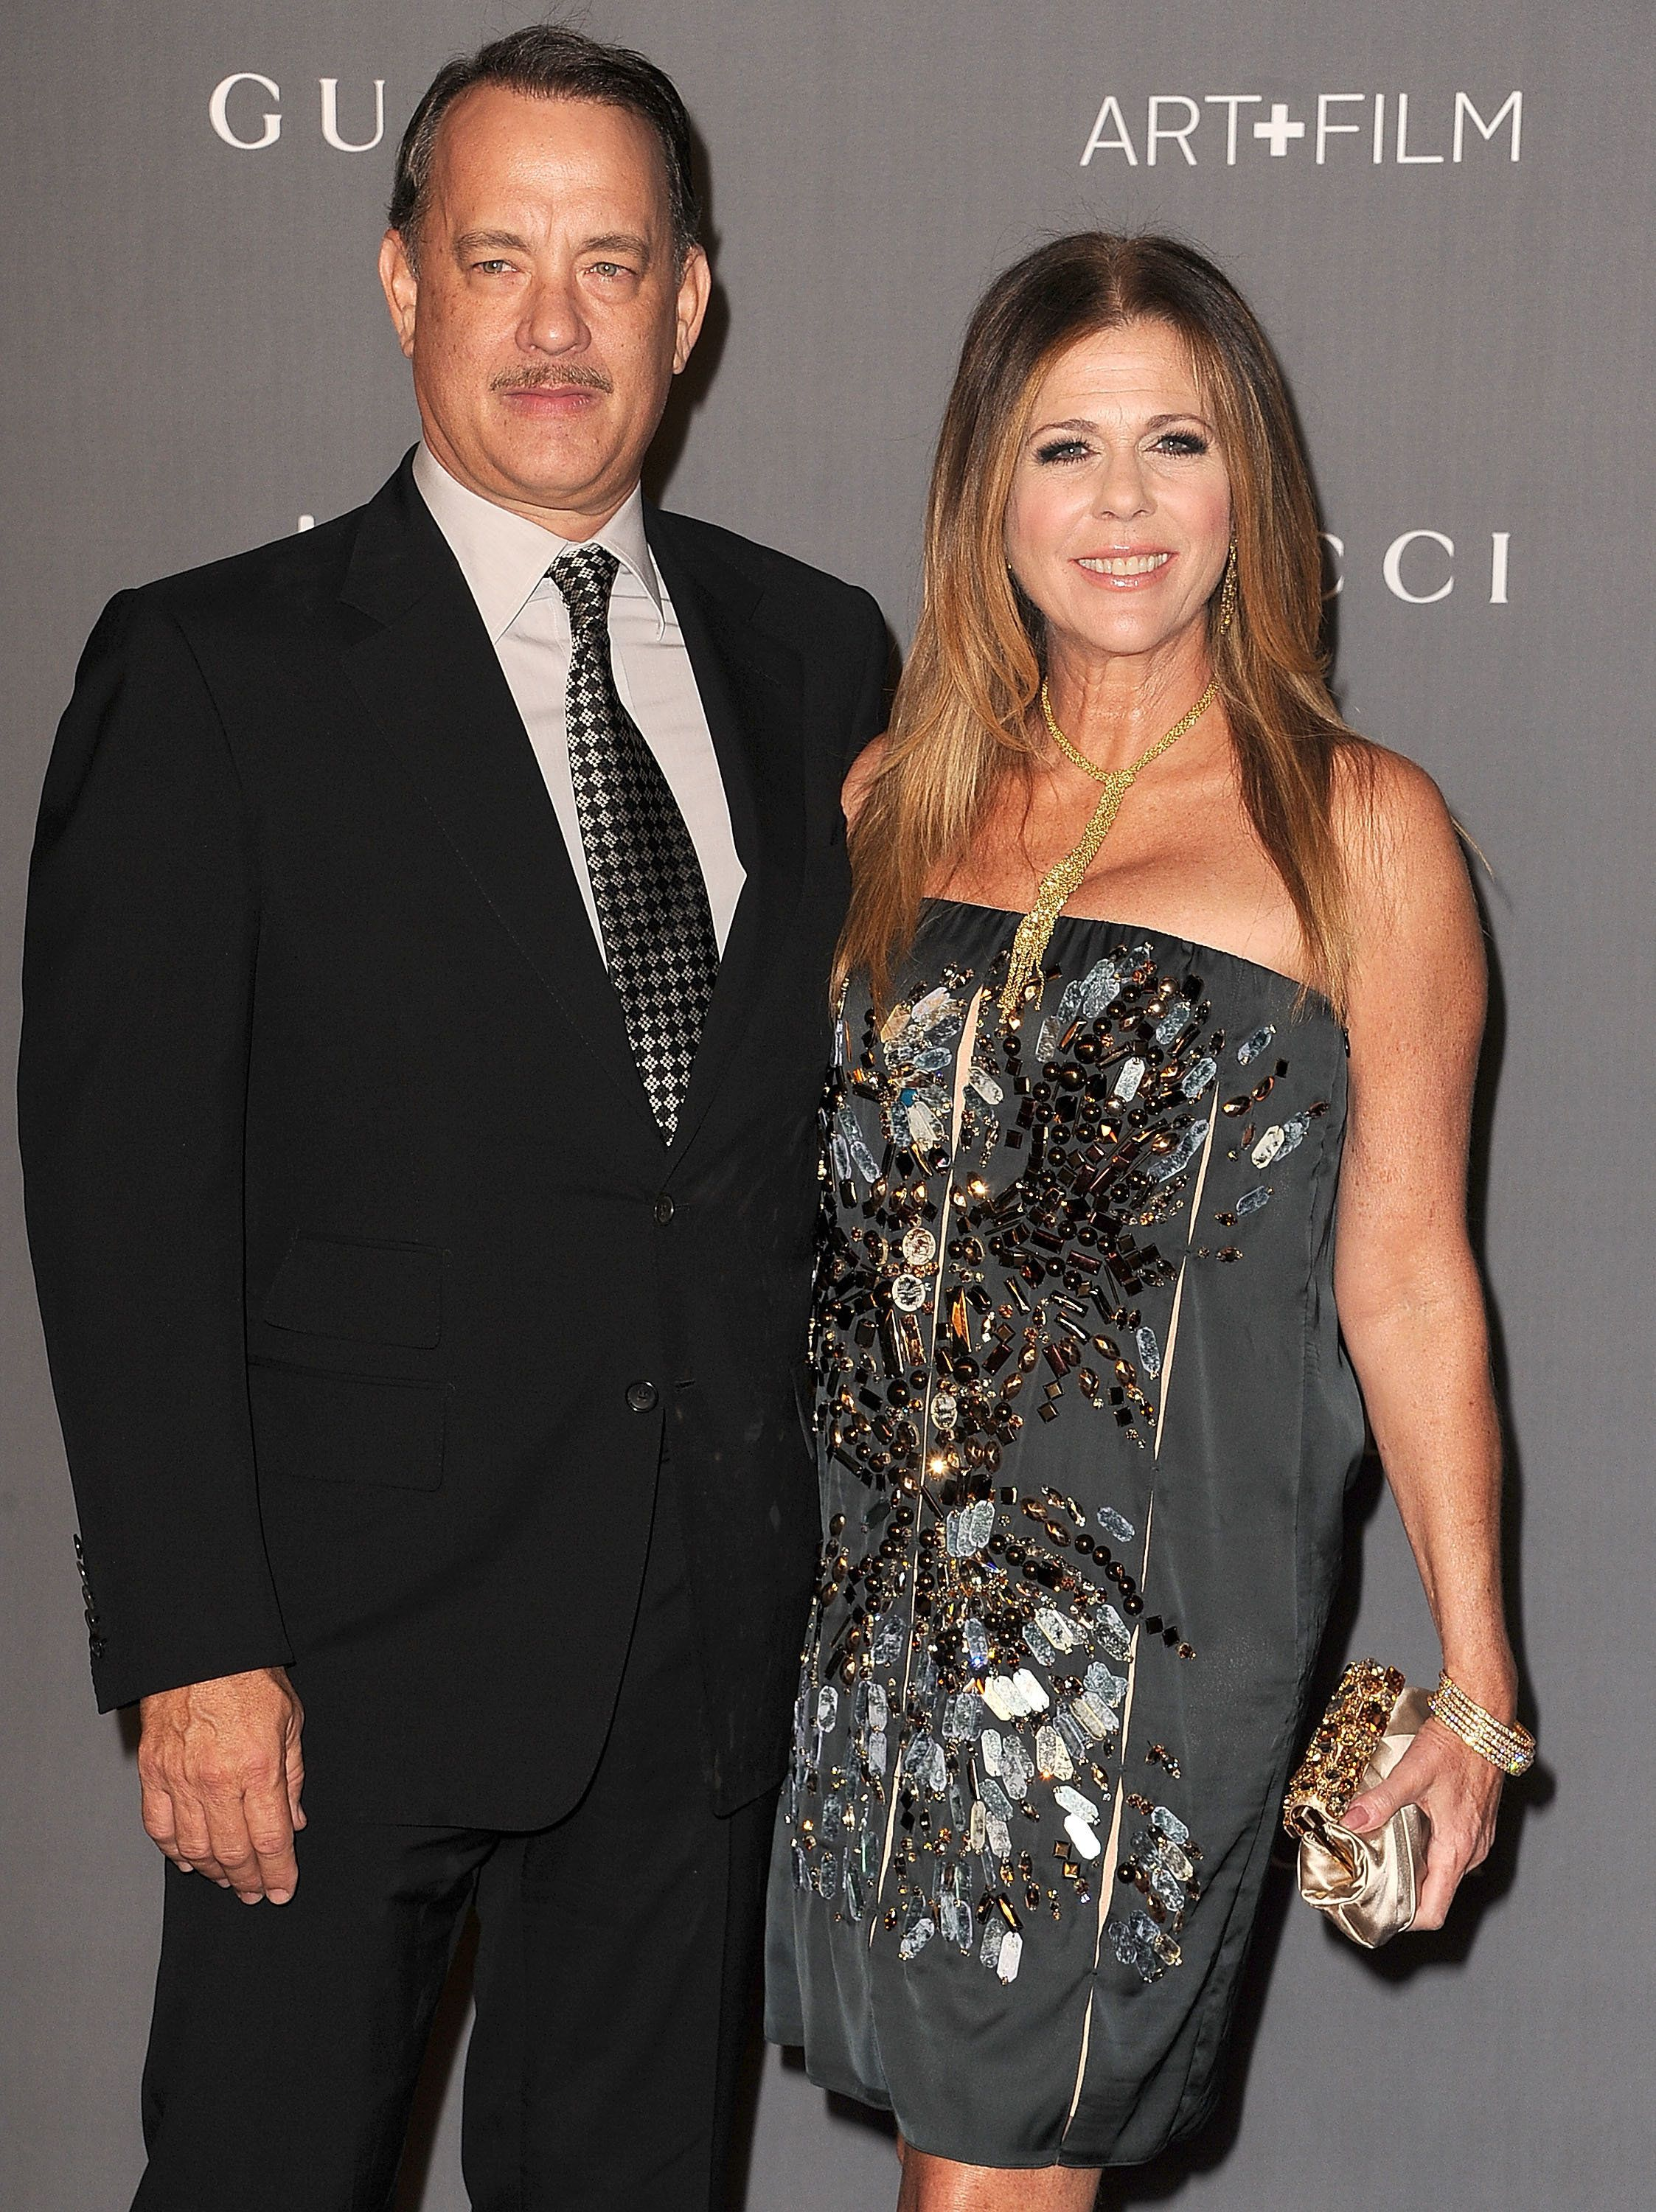 LOS ANGELES, CA - OCTOBER 27:  Tom Hanks and Rita Wilson arrives at the LACMA Art + Gala at LACMA on October 27, 2012 in Los Angeles, California.  (Photo by Steve Granitz/WireImage)